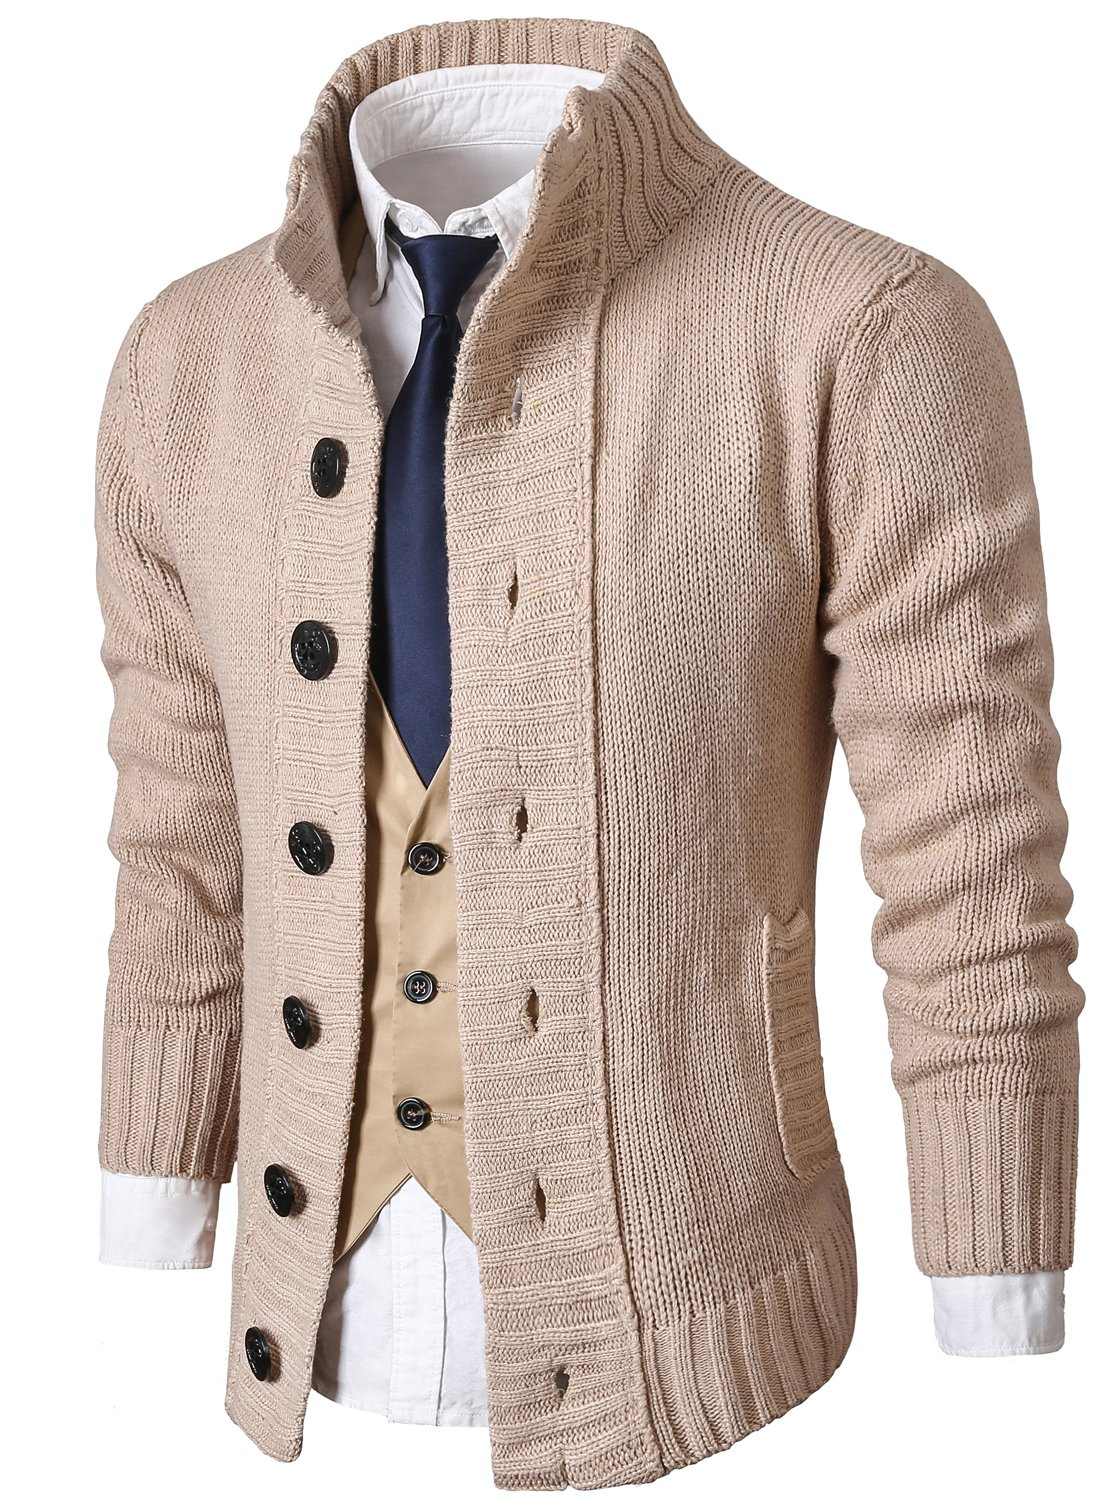 314ee16973 MIEDEON Mens Casual Stand Collar Cable Knitted Button Down Cardigan Sweater  (S Beige2)  Amazon.com.au  Fashion